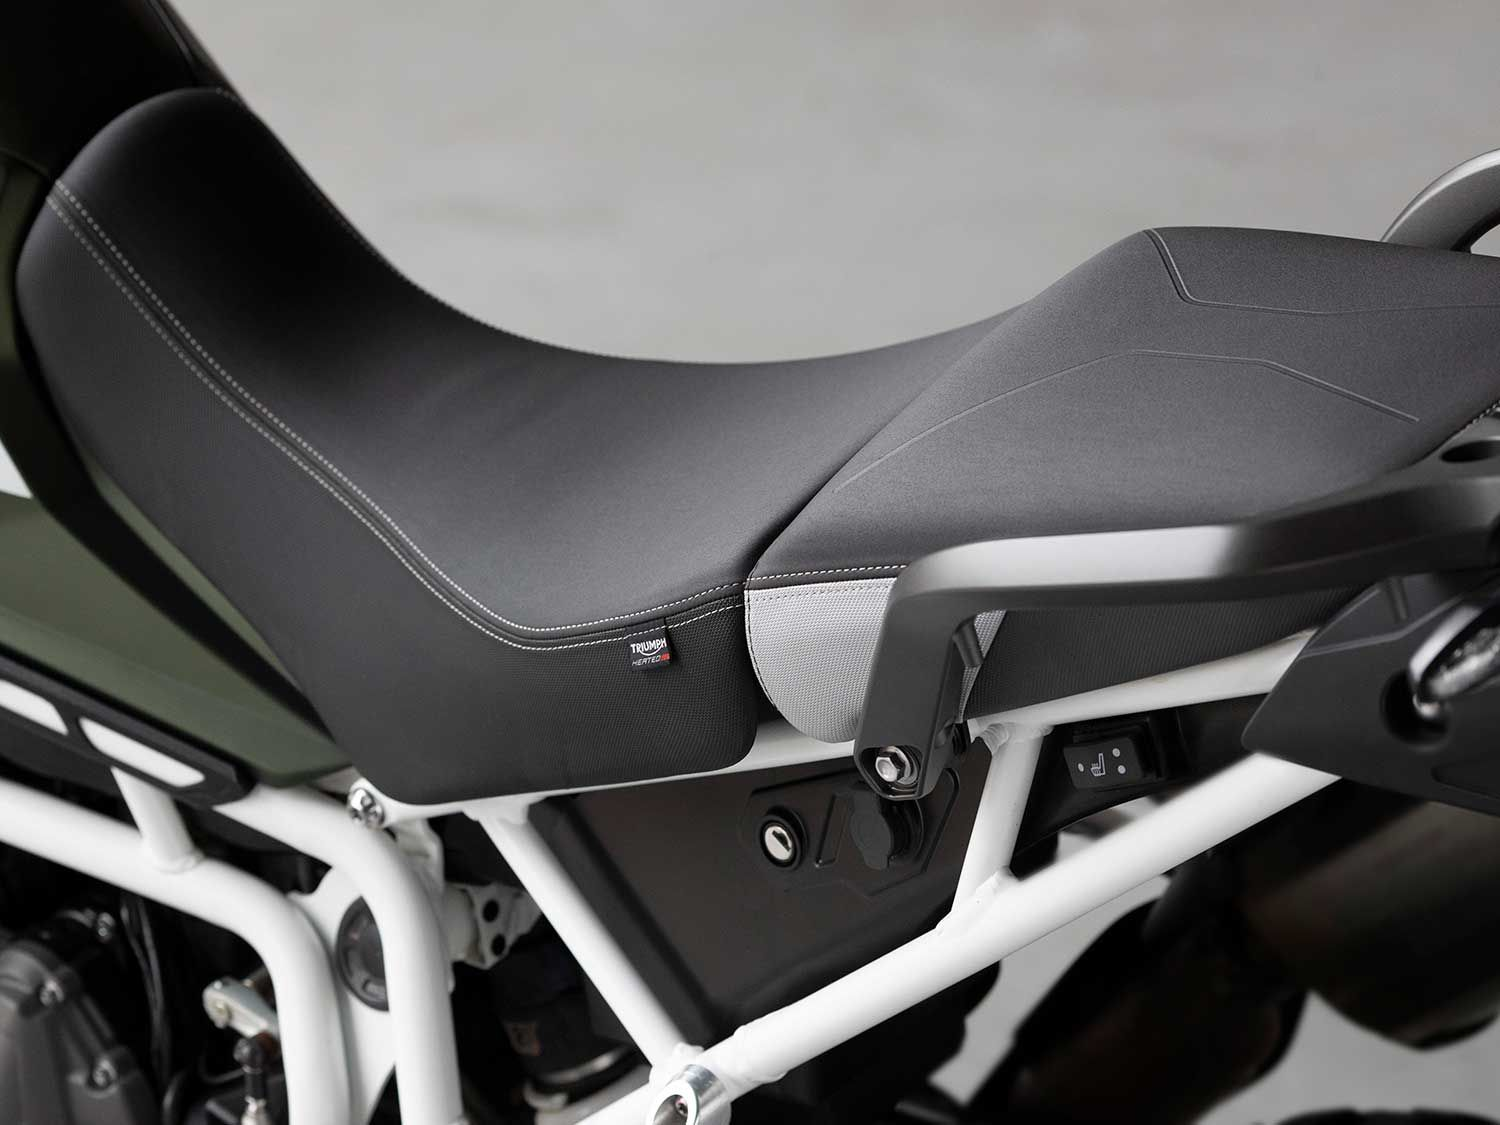 The premium Tiger 900 models come with heated and ultra-plush-looking rider and passenger seats.